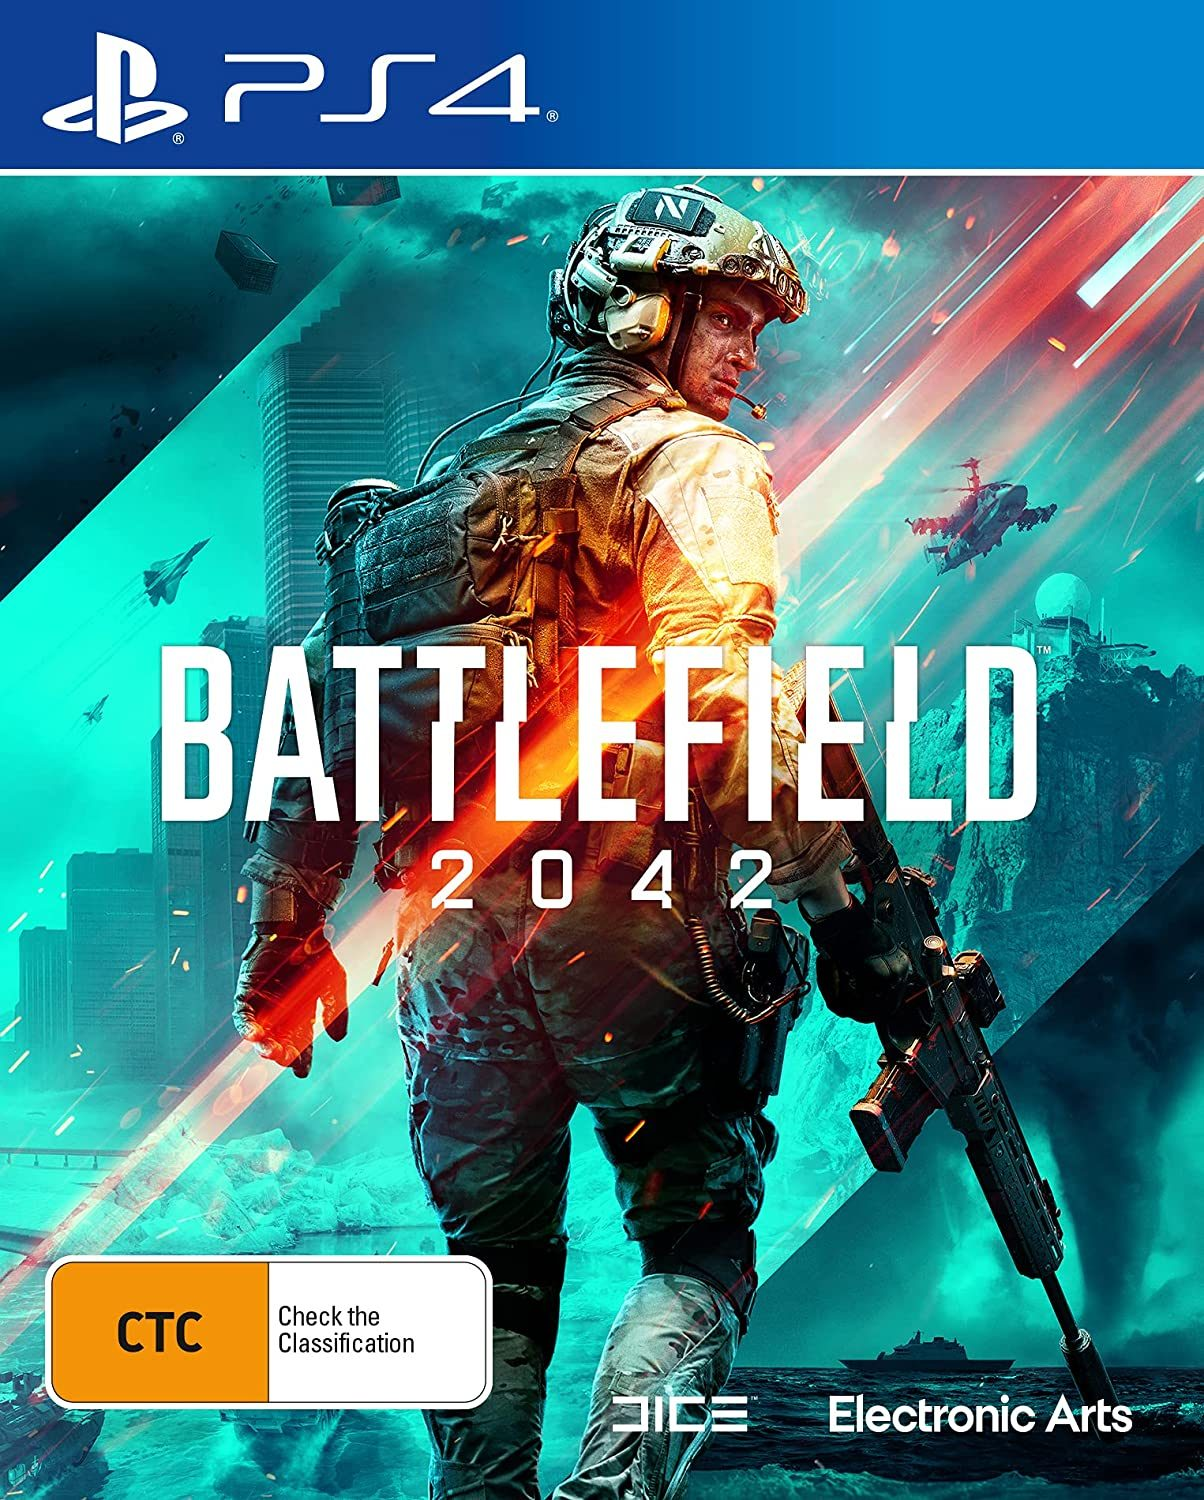 Cheapest copy of Battlefield 2042